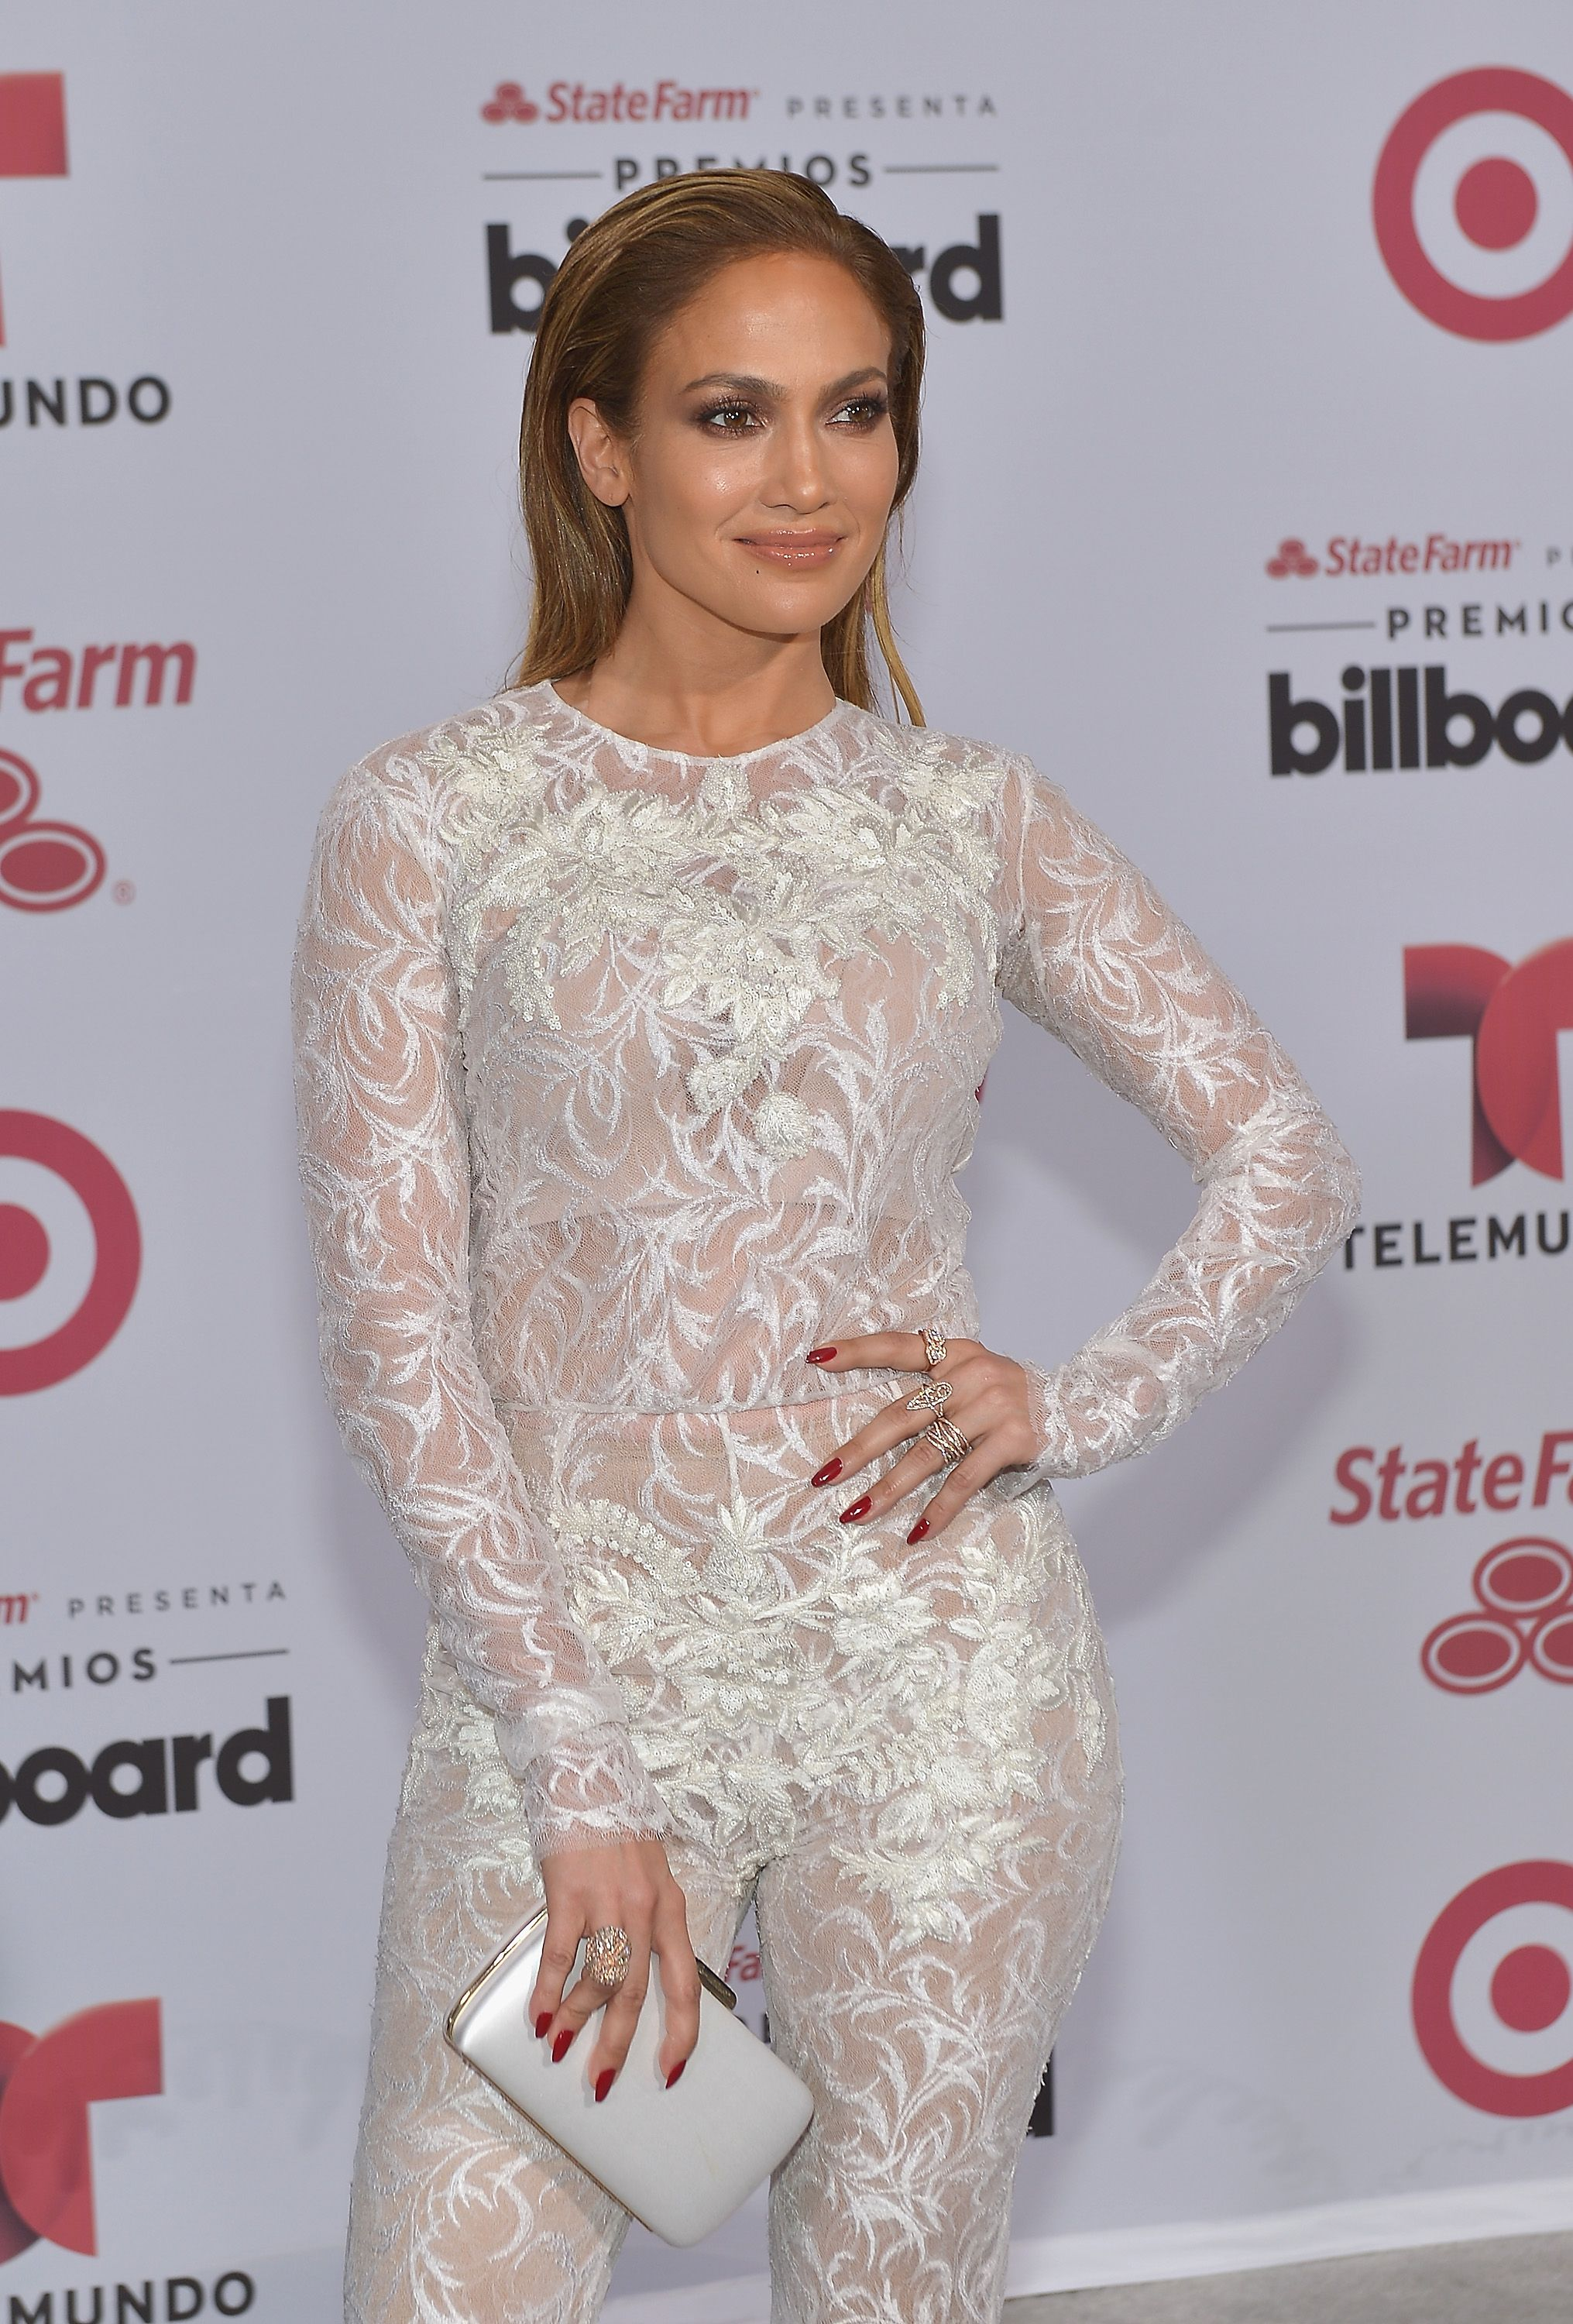 Jennifer Lopez at the 2015 Billboard Latin Music Awards presented bu State Farm on Telemundo at Bank United Center on April 30, 2015  | Photo: Getty Images